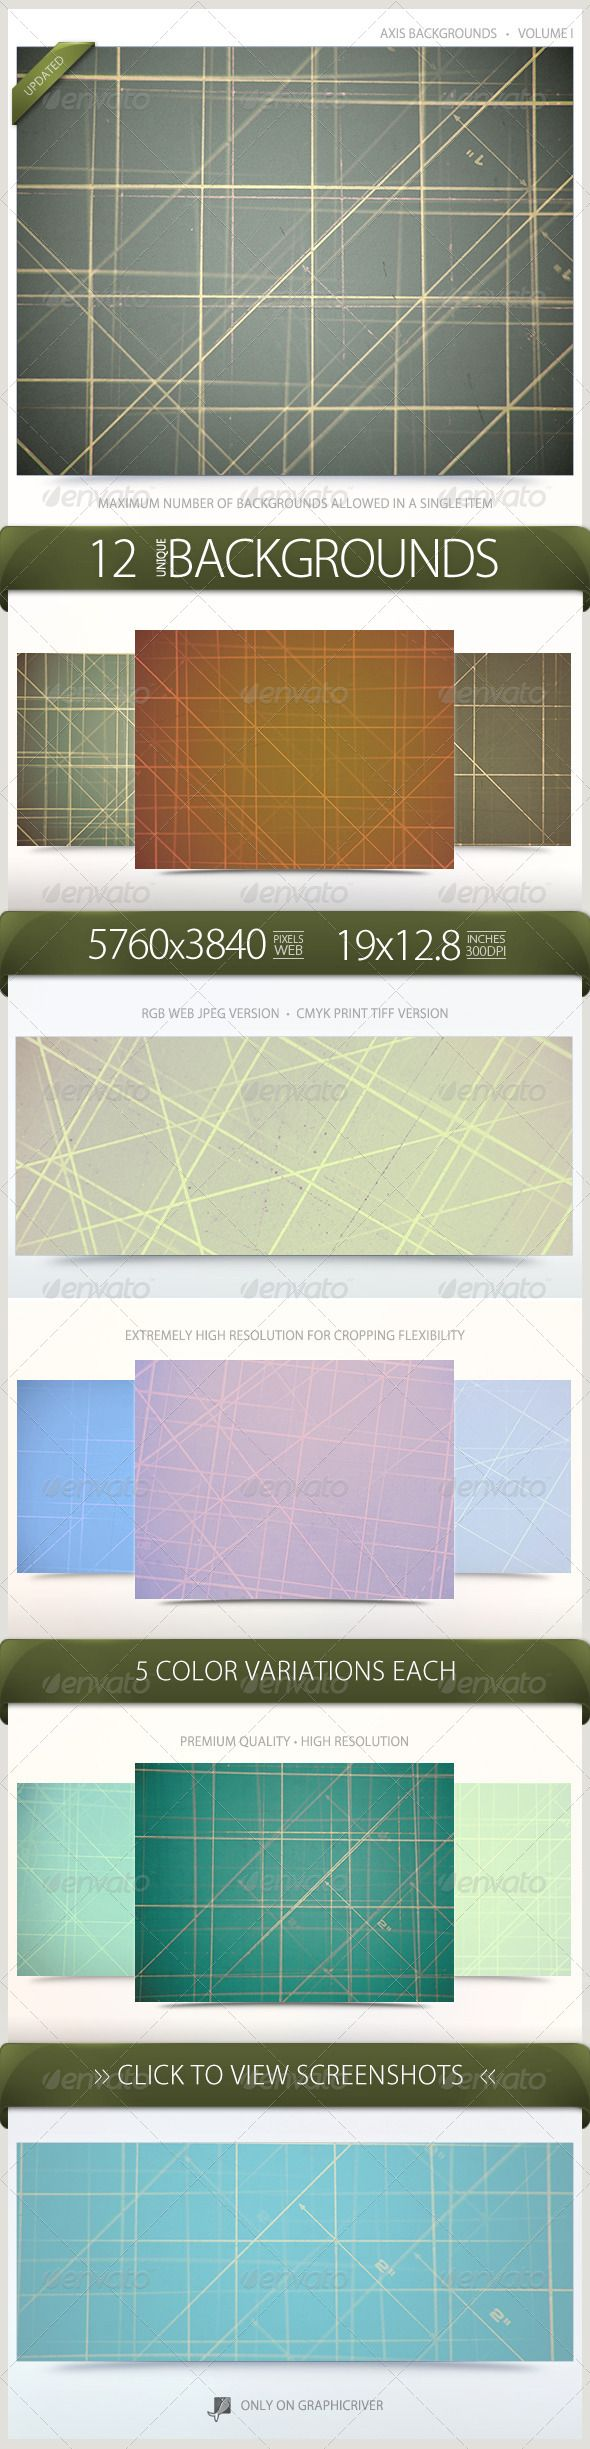 "Axis Backgrounds Volume 1  #GraphicRiver           Axis Backgrounds Volume 1 This set of premium, high-resolution backgrounds contains 12 unique designs. Each background includes 5 color variations for a total of 60 backgrounds. These Line / Axis backgrounds are perfect for any type of Print or Web project. Included in this Volume   12 RGB 72DPI JPEG Web Backgrounds  12 CMYK 300DPI LZW TIFF Print Backgrounds  5760×3840 Pixels  19"" x 12.8"" Inches  5 Color Variations Each  60 Total Backgrounds…"